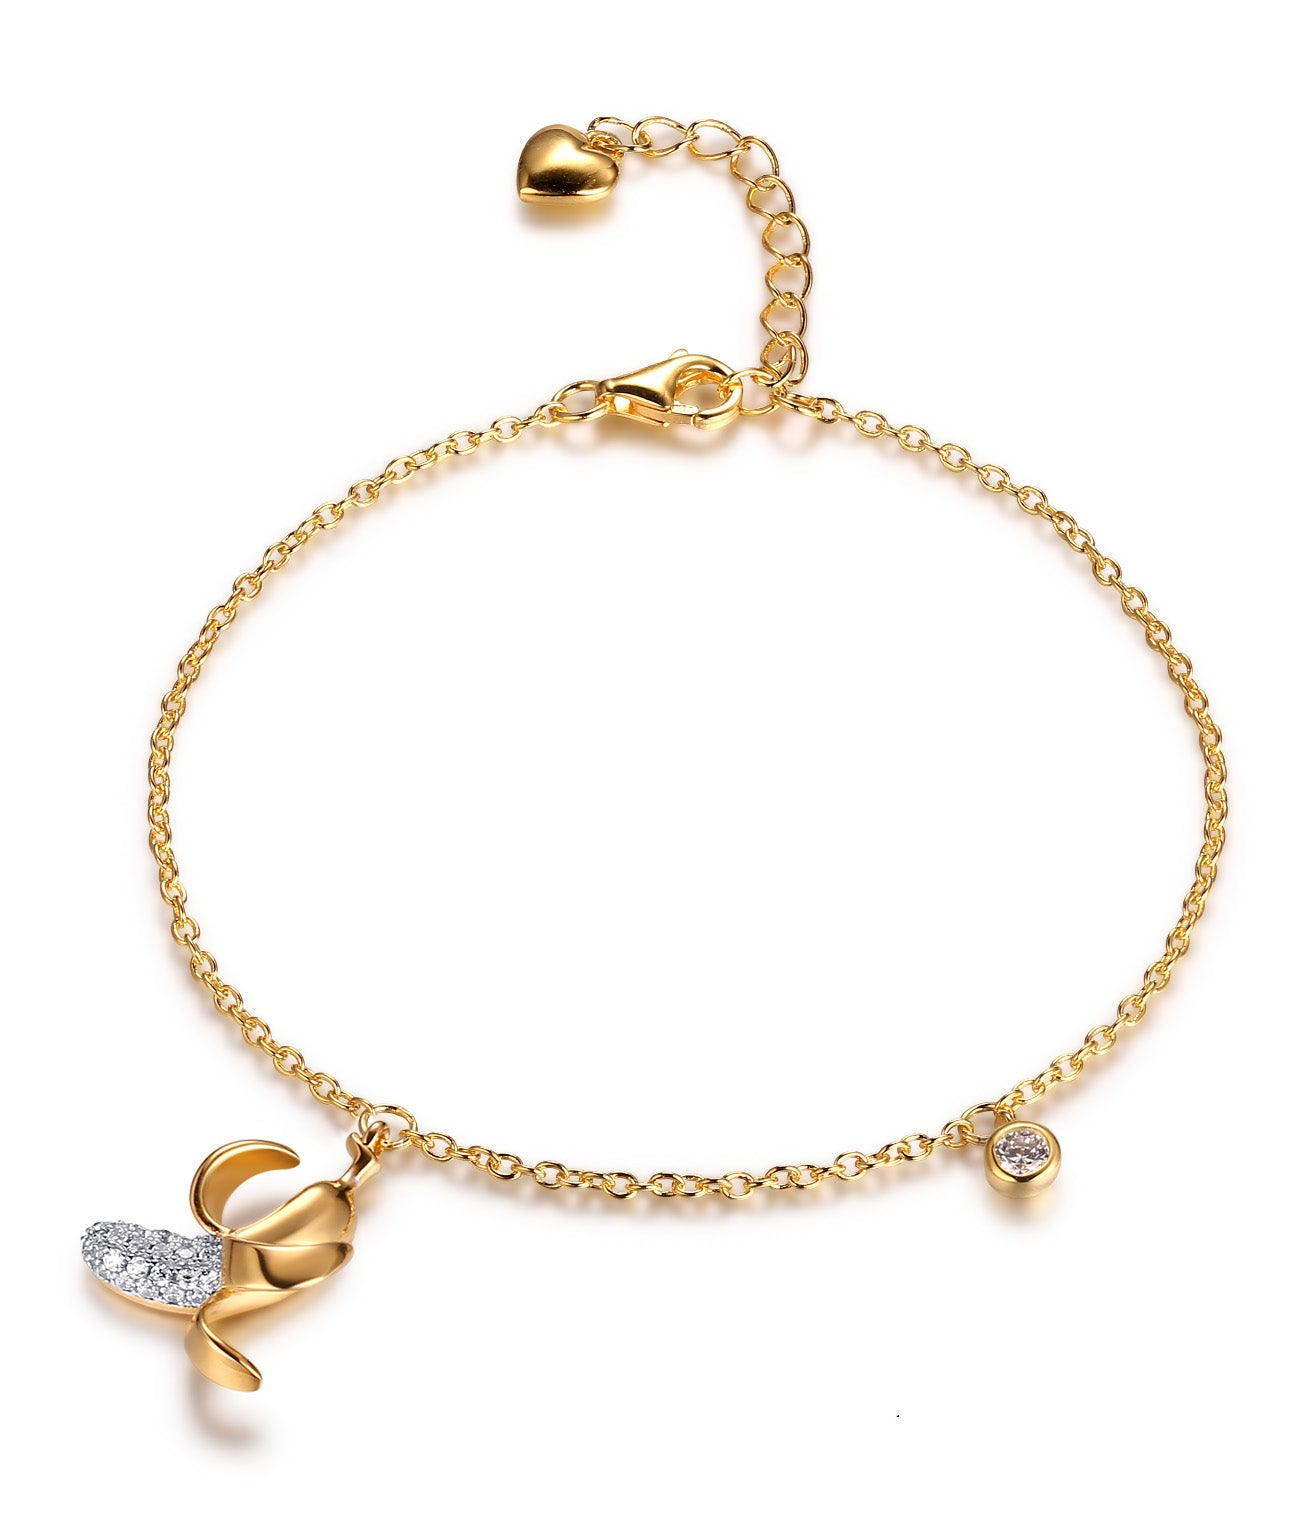 Celeste Banana Bracelet for Women